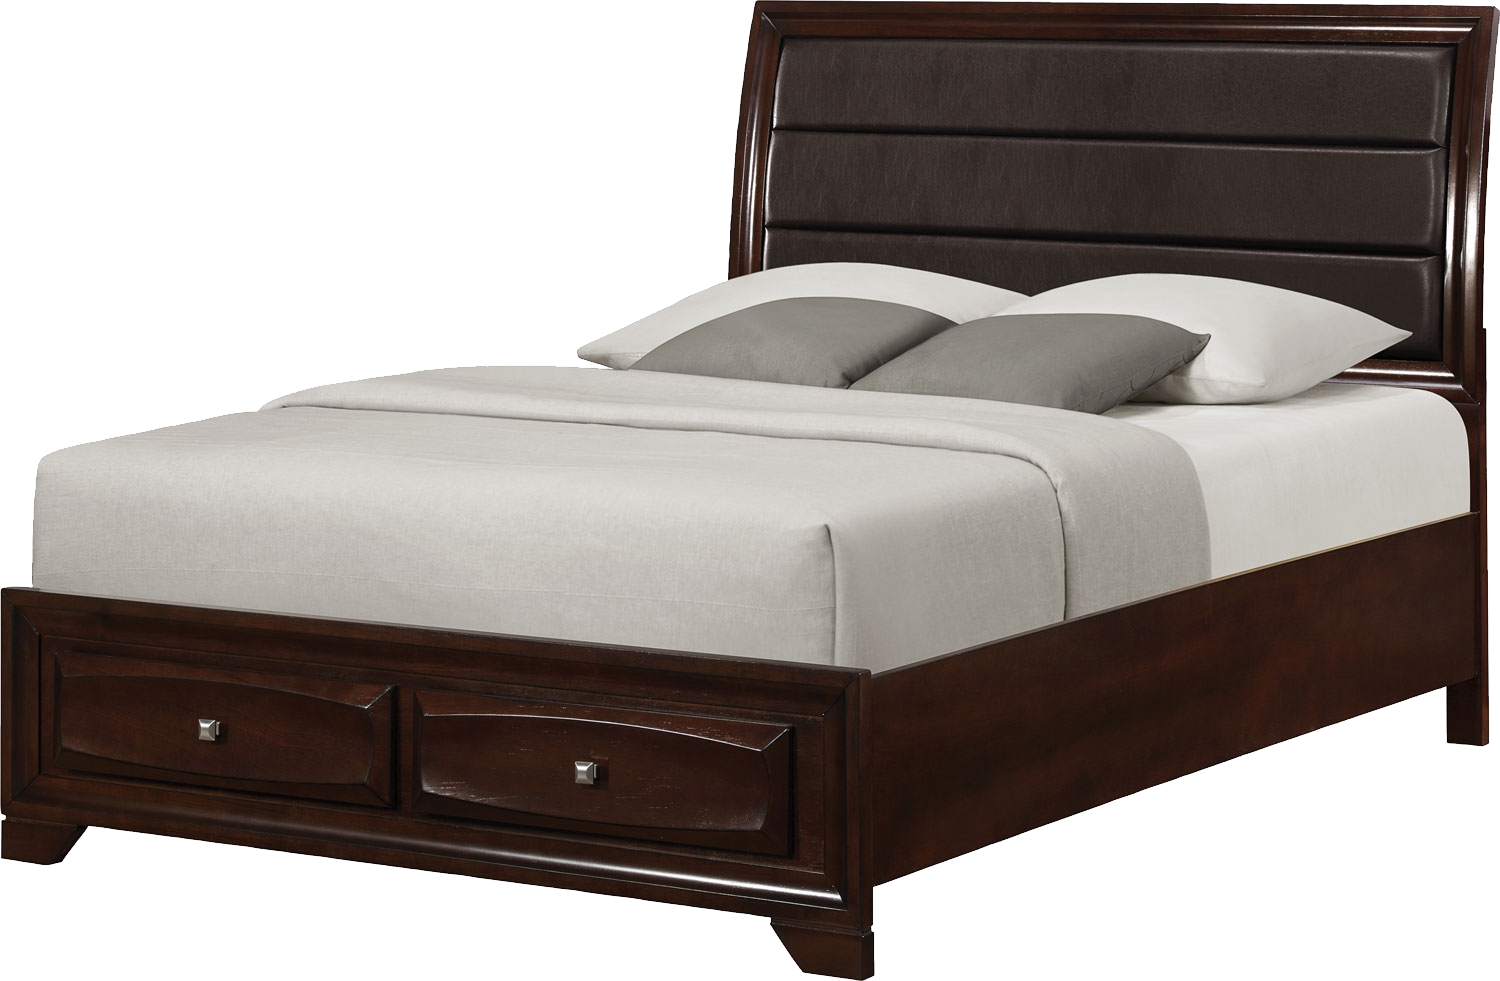 Withdrawable Bed, Luxe Bed, Leather Cap, Dark Bed Png 2829